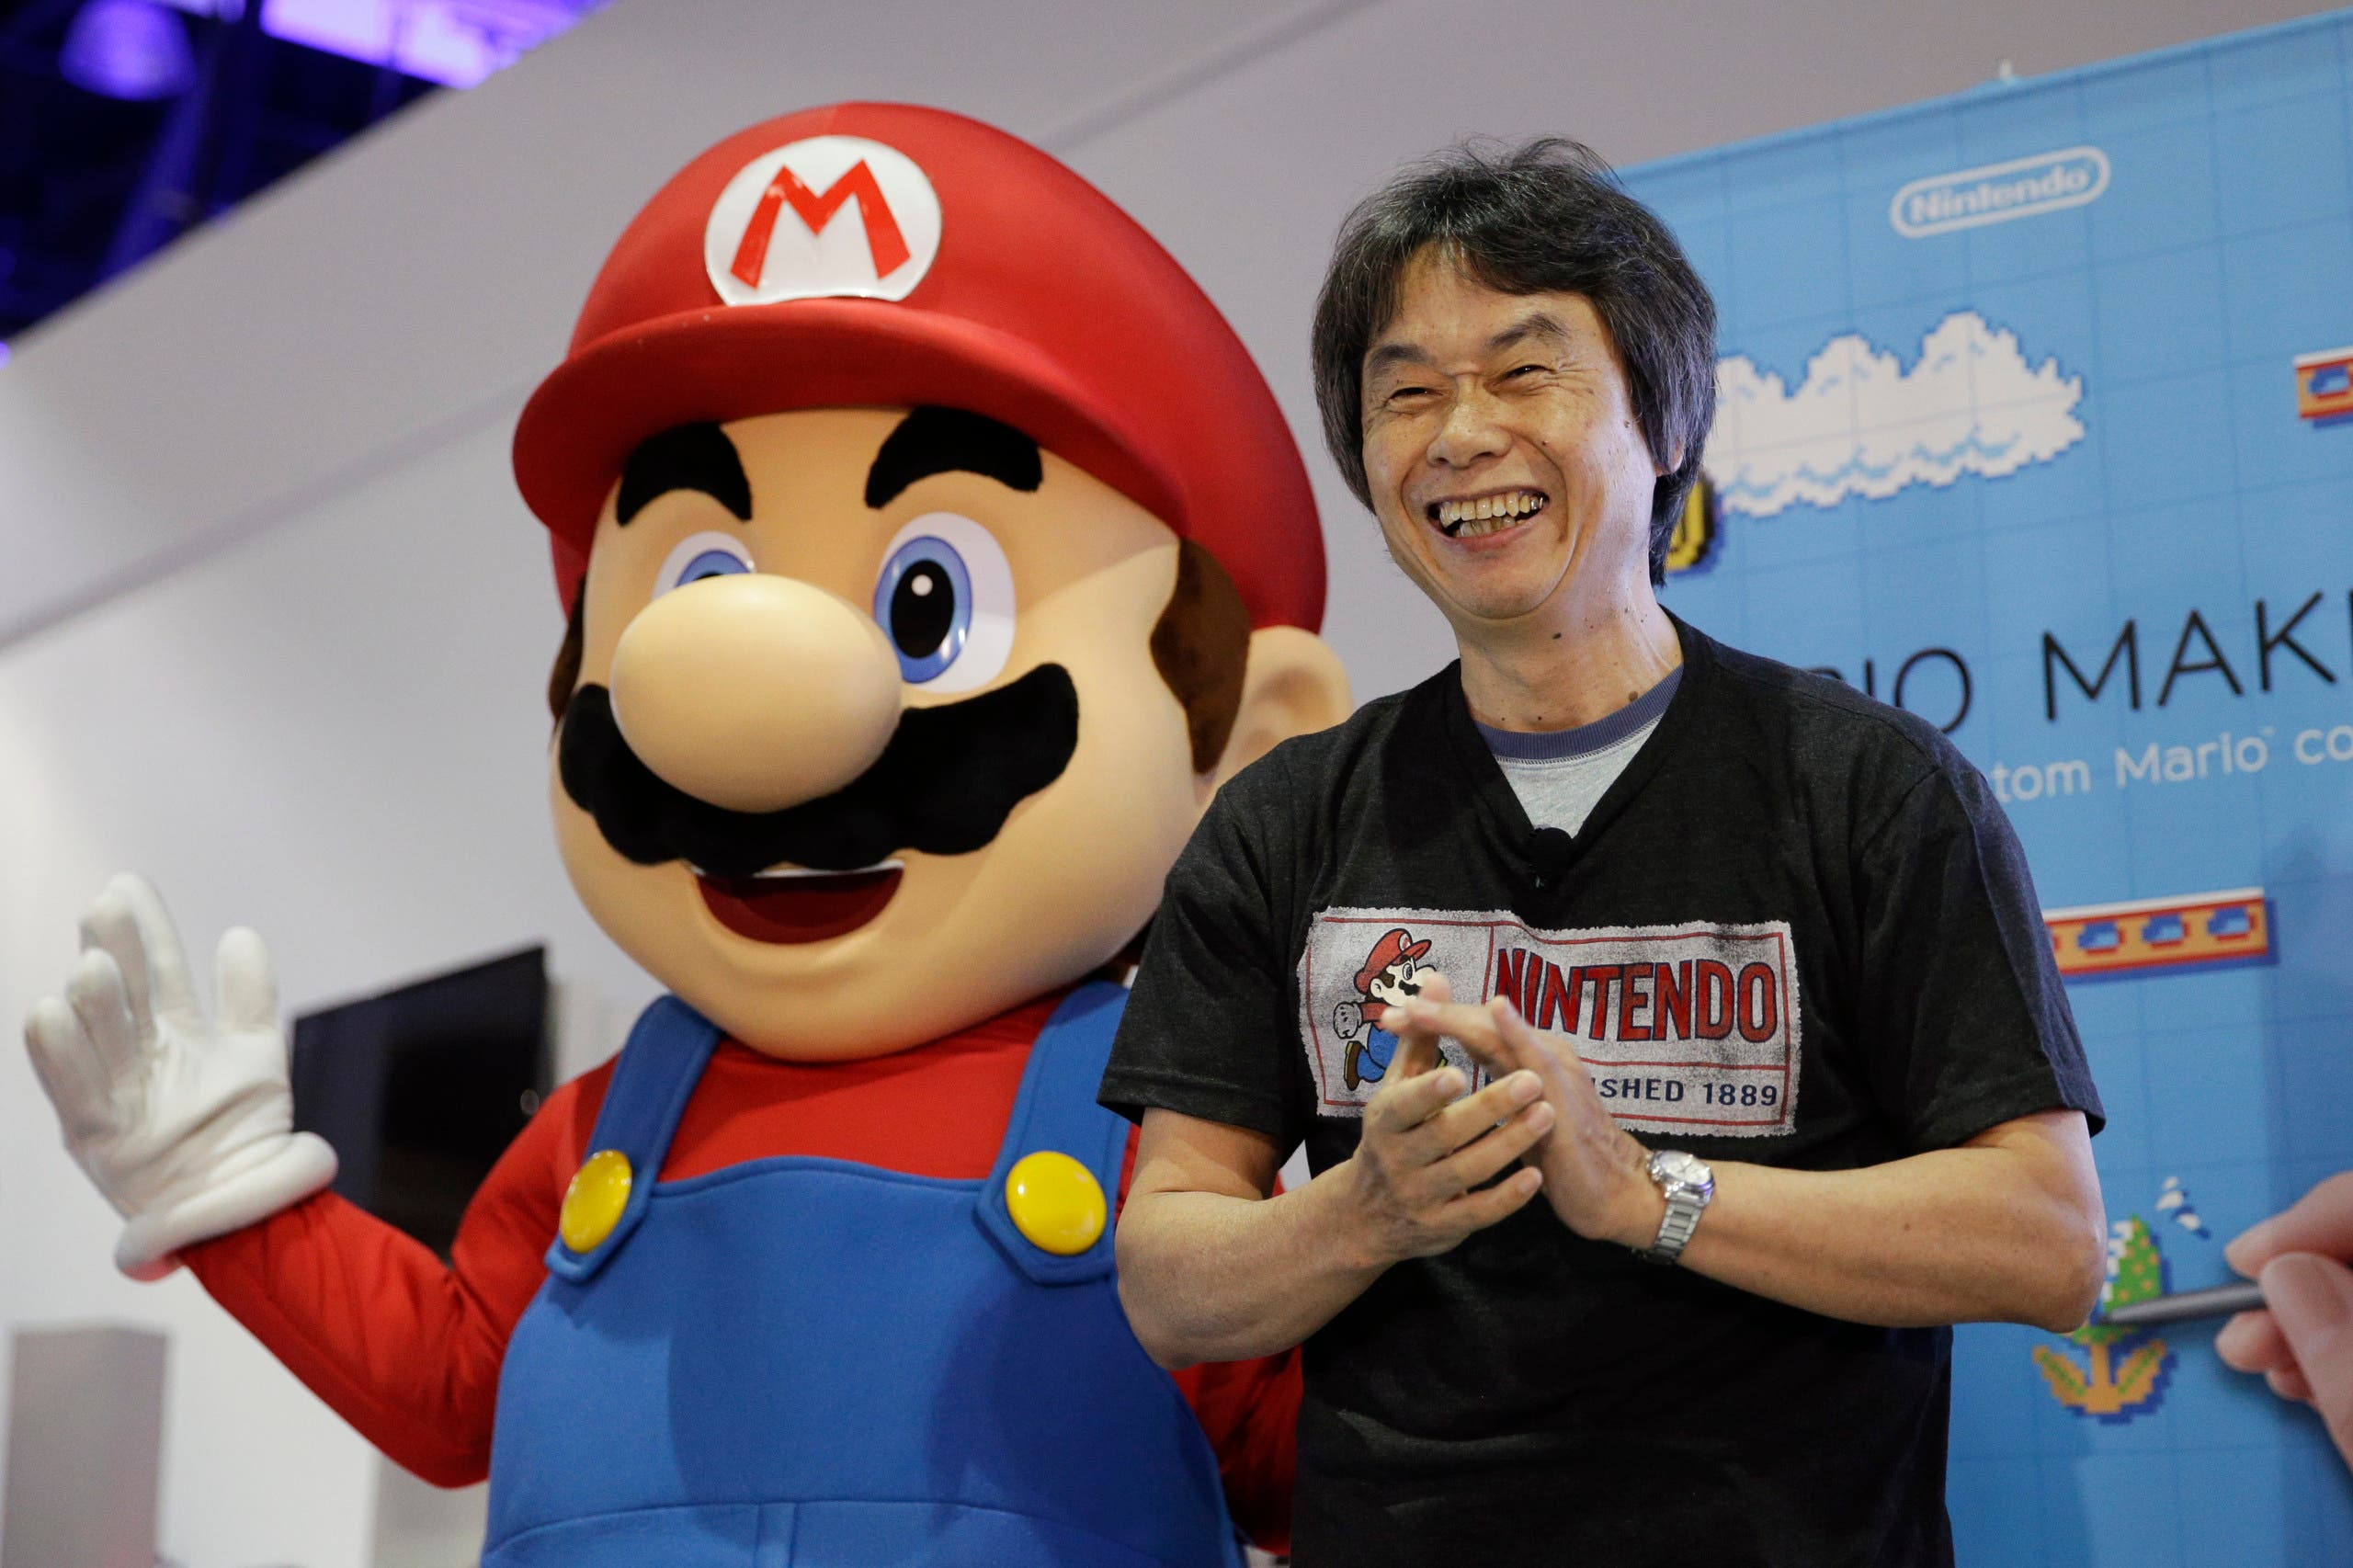 In this June 11, 2014 file photo, Japanese video game designer Shigeru Miyamoto introduces the Nintendo's Mario Maker during a press event at the Nintendo booth at the Electronic Entertainment Expo, in Los Angeles. After rebounding with last year's Mario Kart 8 and Super Smash Bros. (File photo: AP)